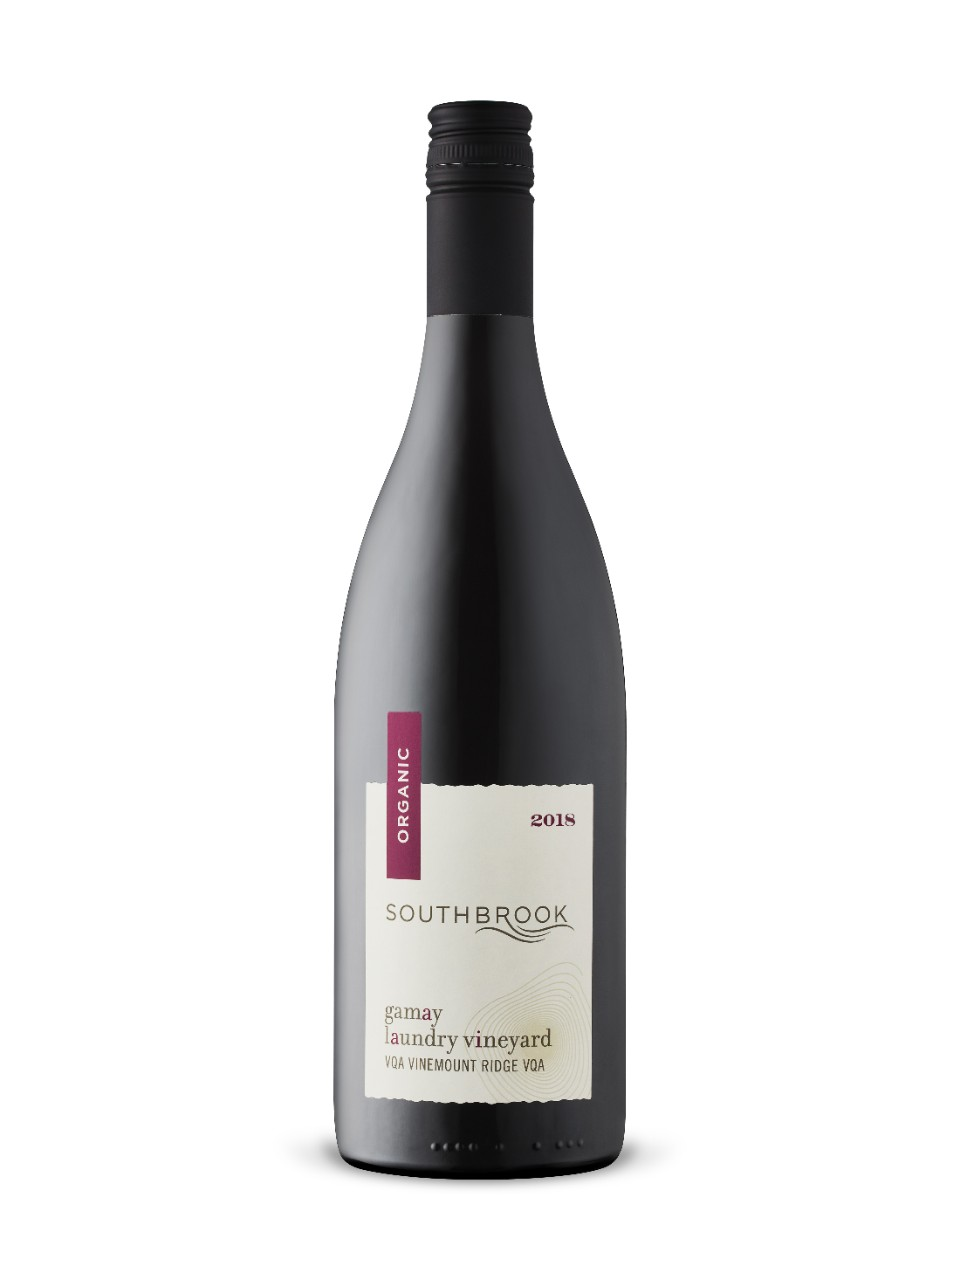 Image for Southbrook Laundry Vineyard Gamay Noir 2017 from LCBO